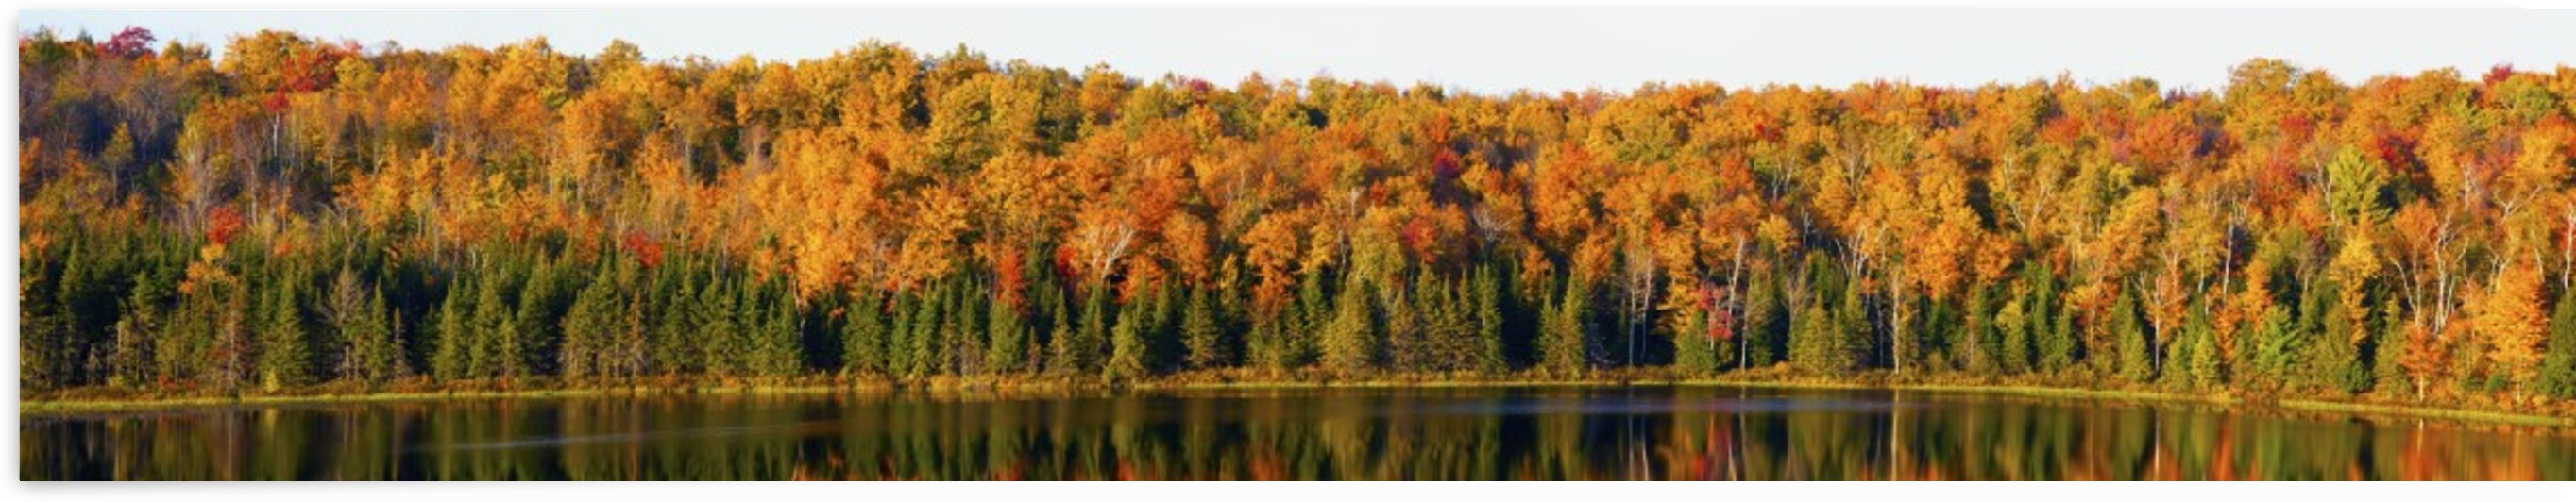 Panorama Of Trees Along The Water's Edge In Autumn Colours; South Bolton, Quebec, Canada by PacificStock